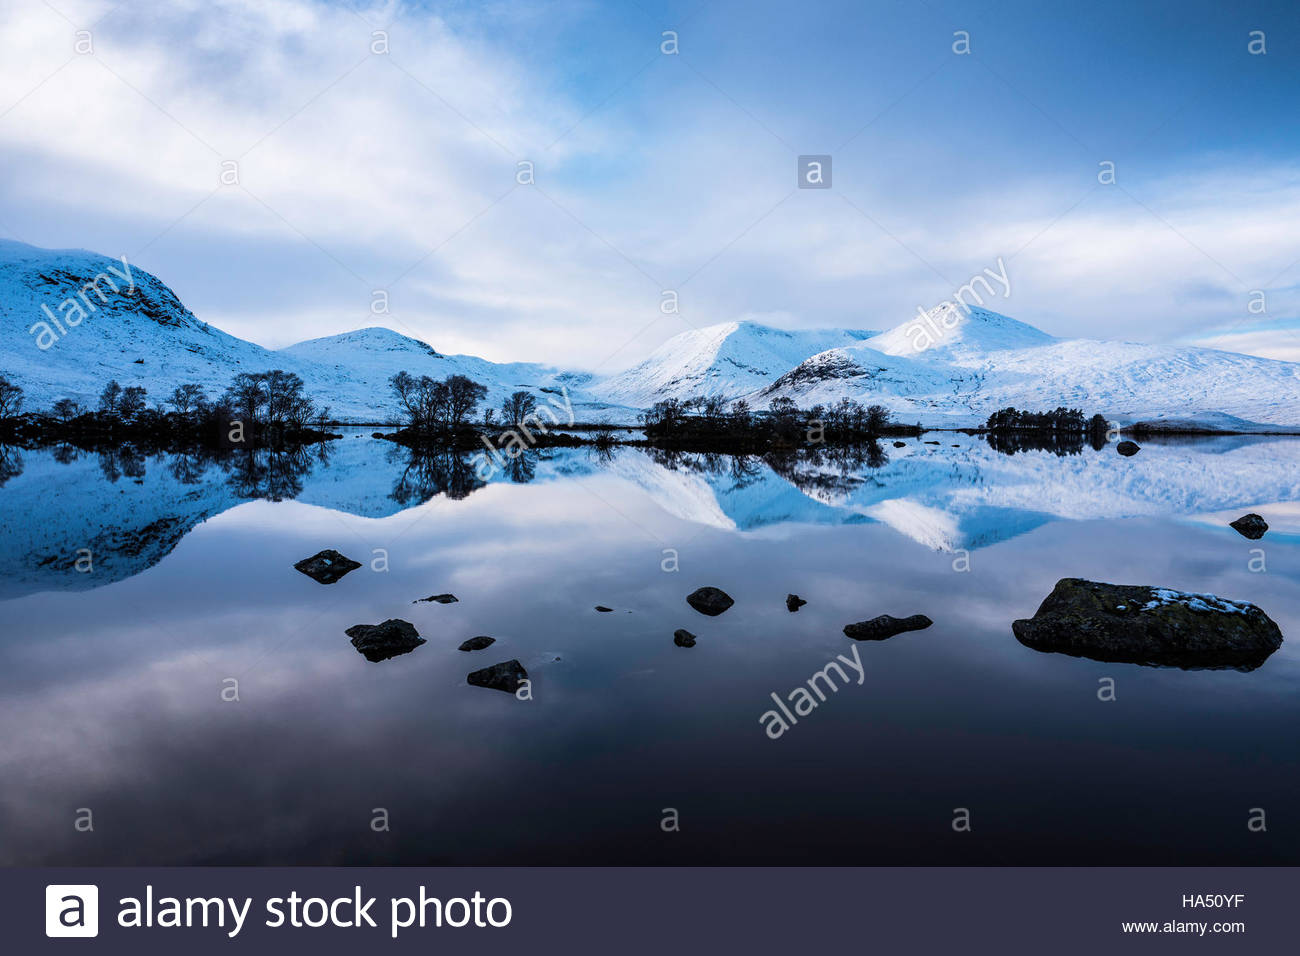 Lochan nah-Achlaise, Glencoe, Scotland, UK. 18th November 2016. Looking east towards Black Mount as snow covers - Stock Image